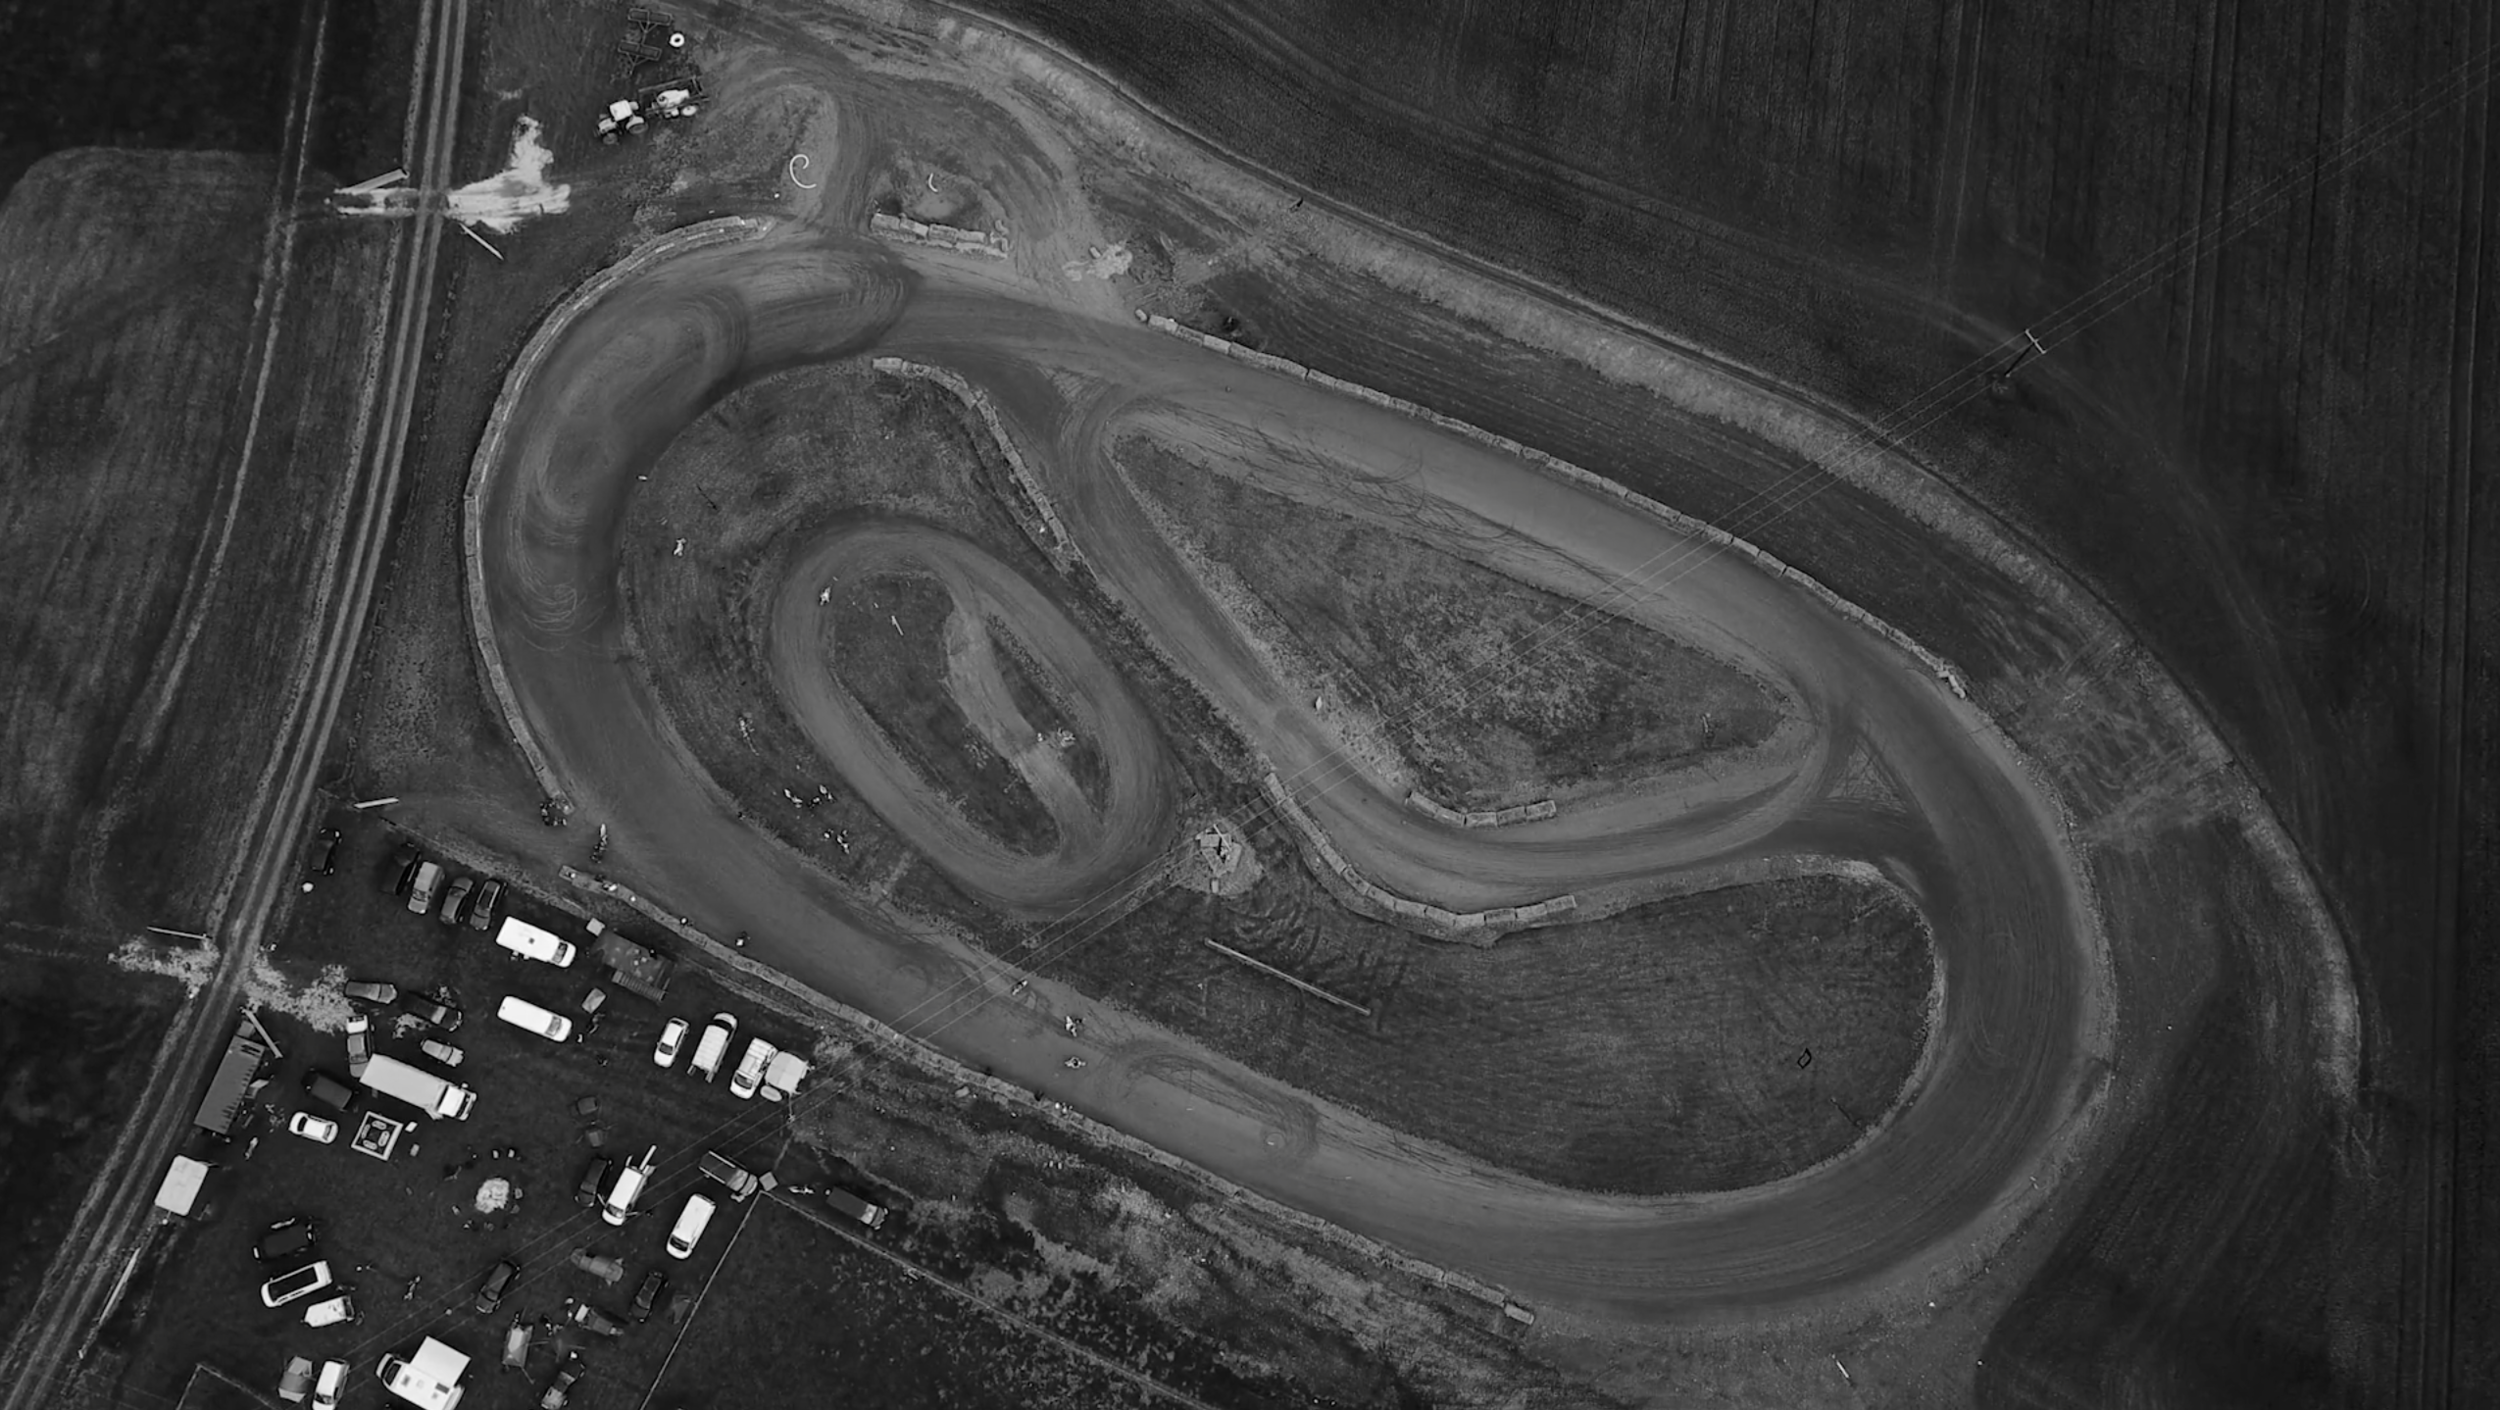 GREENFIELD DIRT TRACK